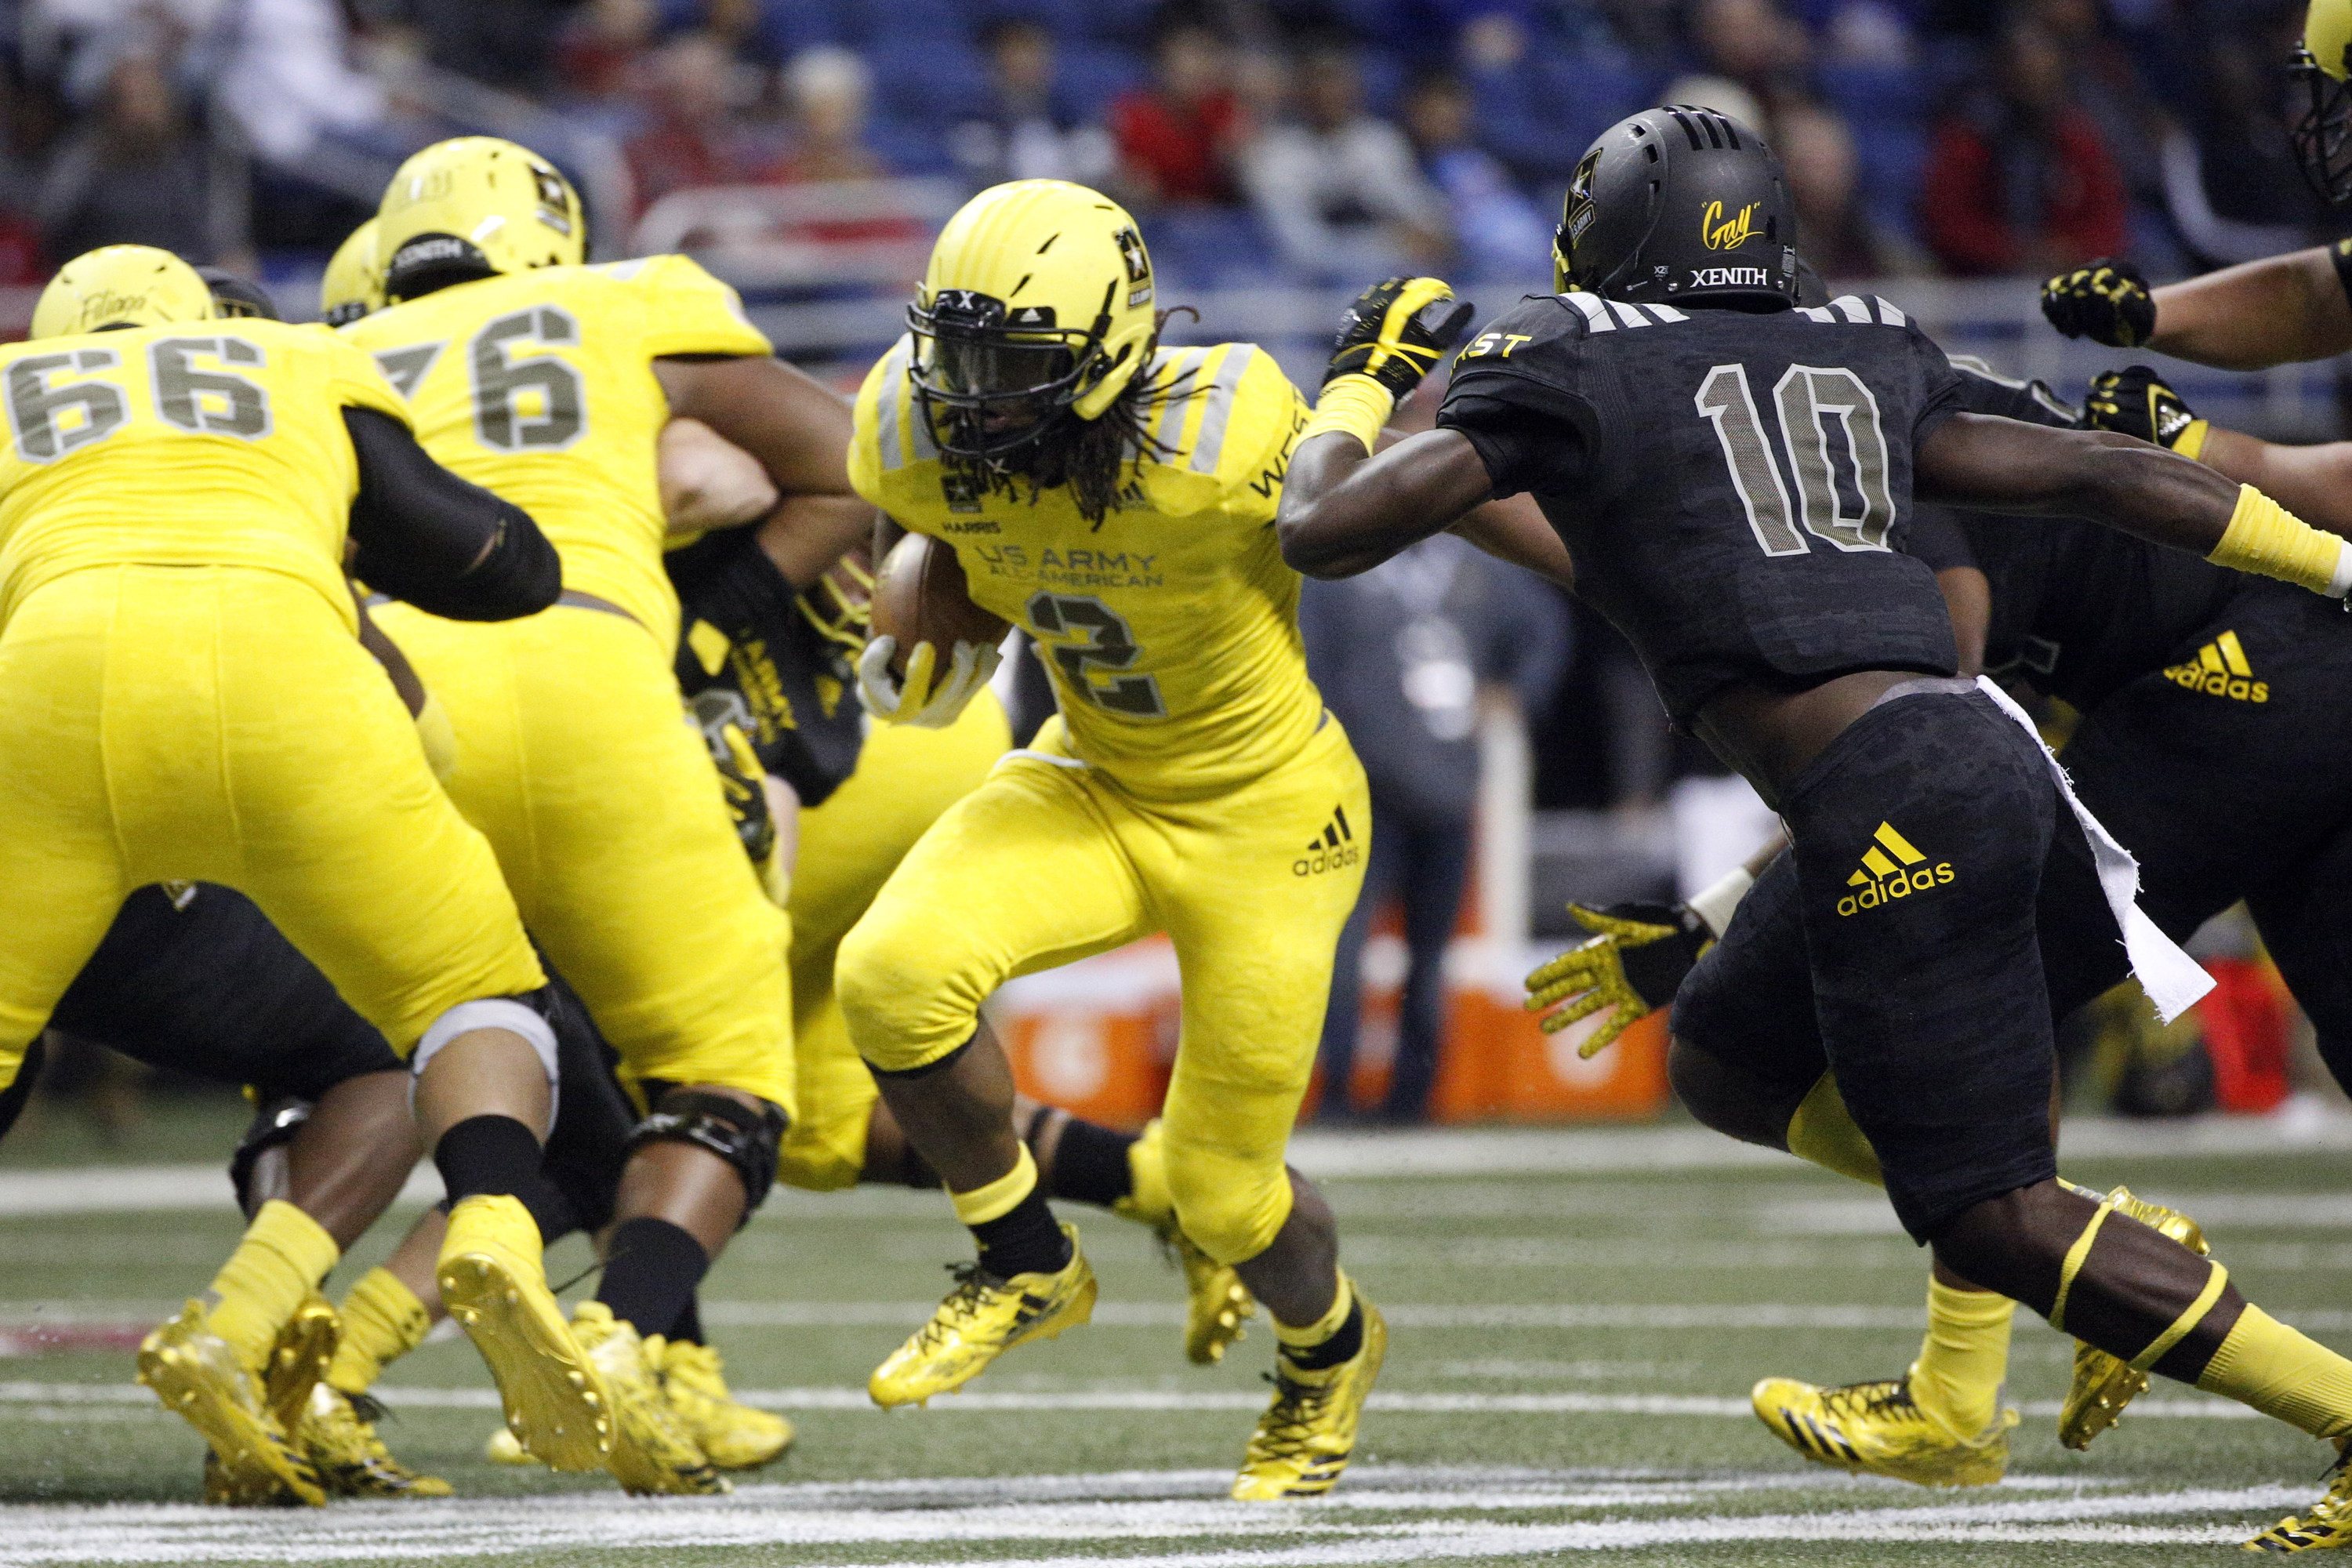 1/7/17 12:55:29 PM -- San Antonio, TX, U.S.A -- West running back Najee Harris (2) runs the ball during U.S. Army All-American Bowl high school football game at the Alamodome. -- Photo by USA TODAY Sports Images, Gannett ORG XMIT: US 135880 Army All-America 1/7/2017 [Via MerlinFTP Drop]